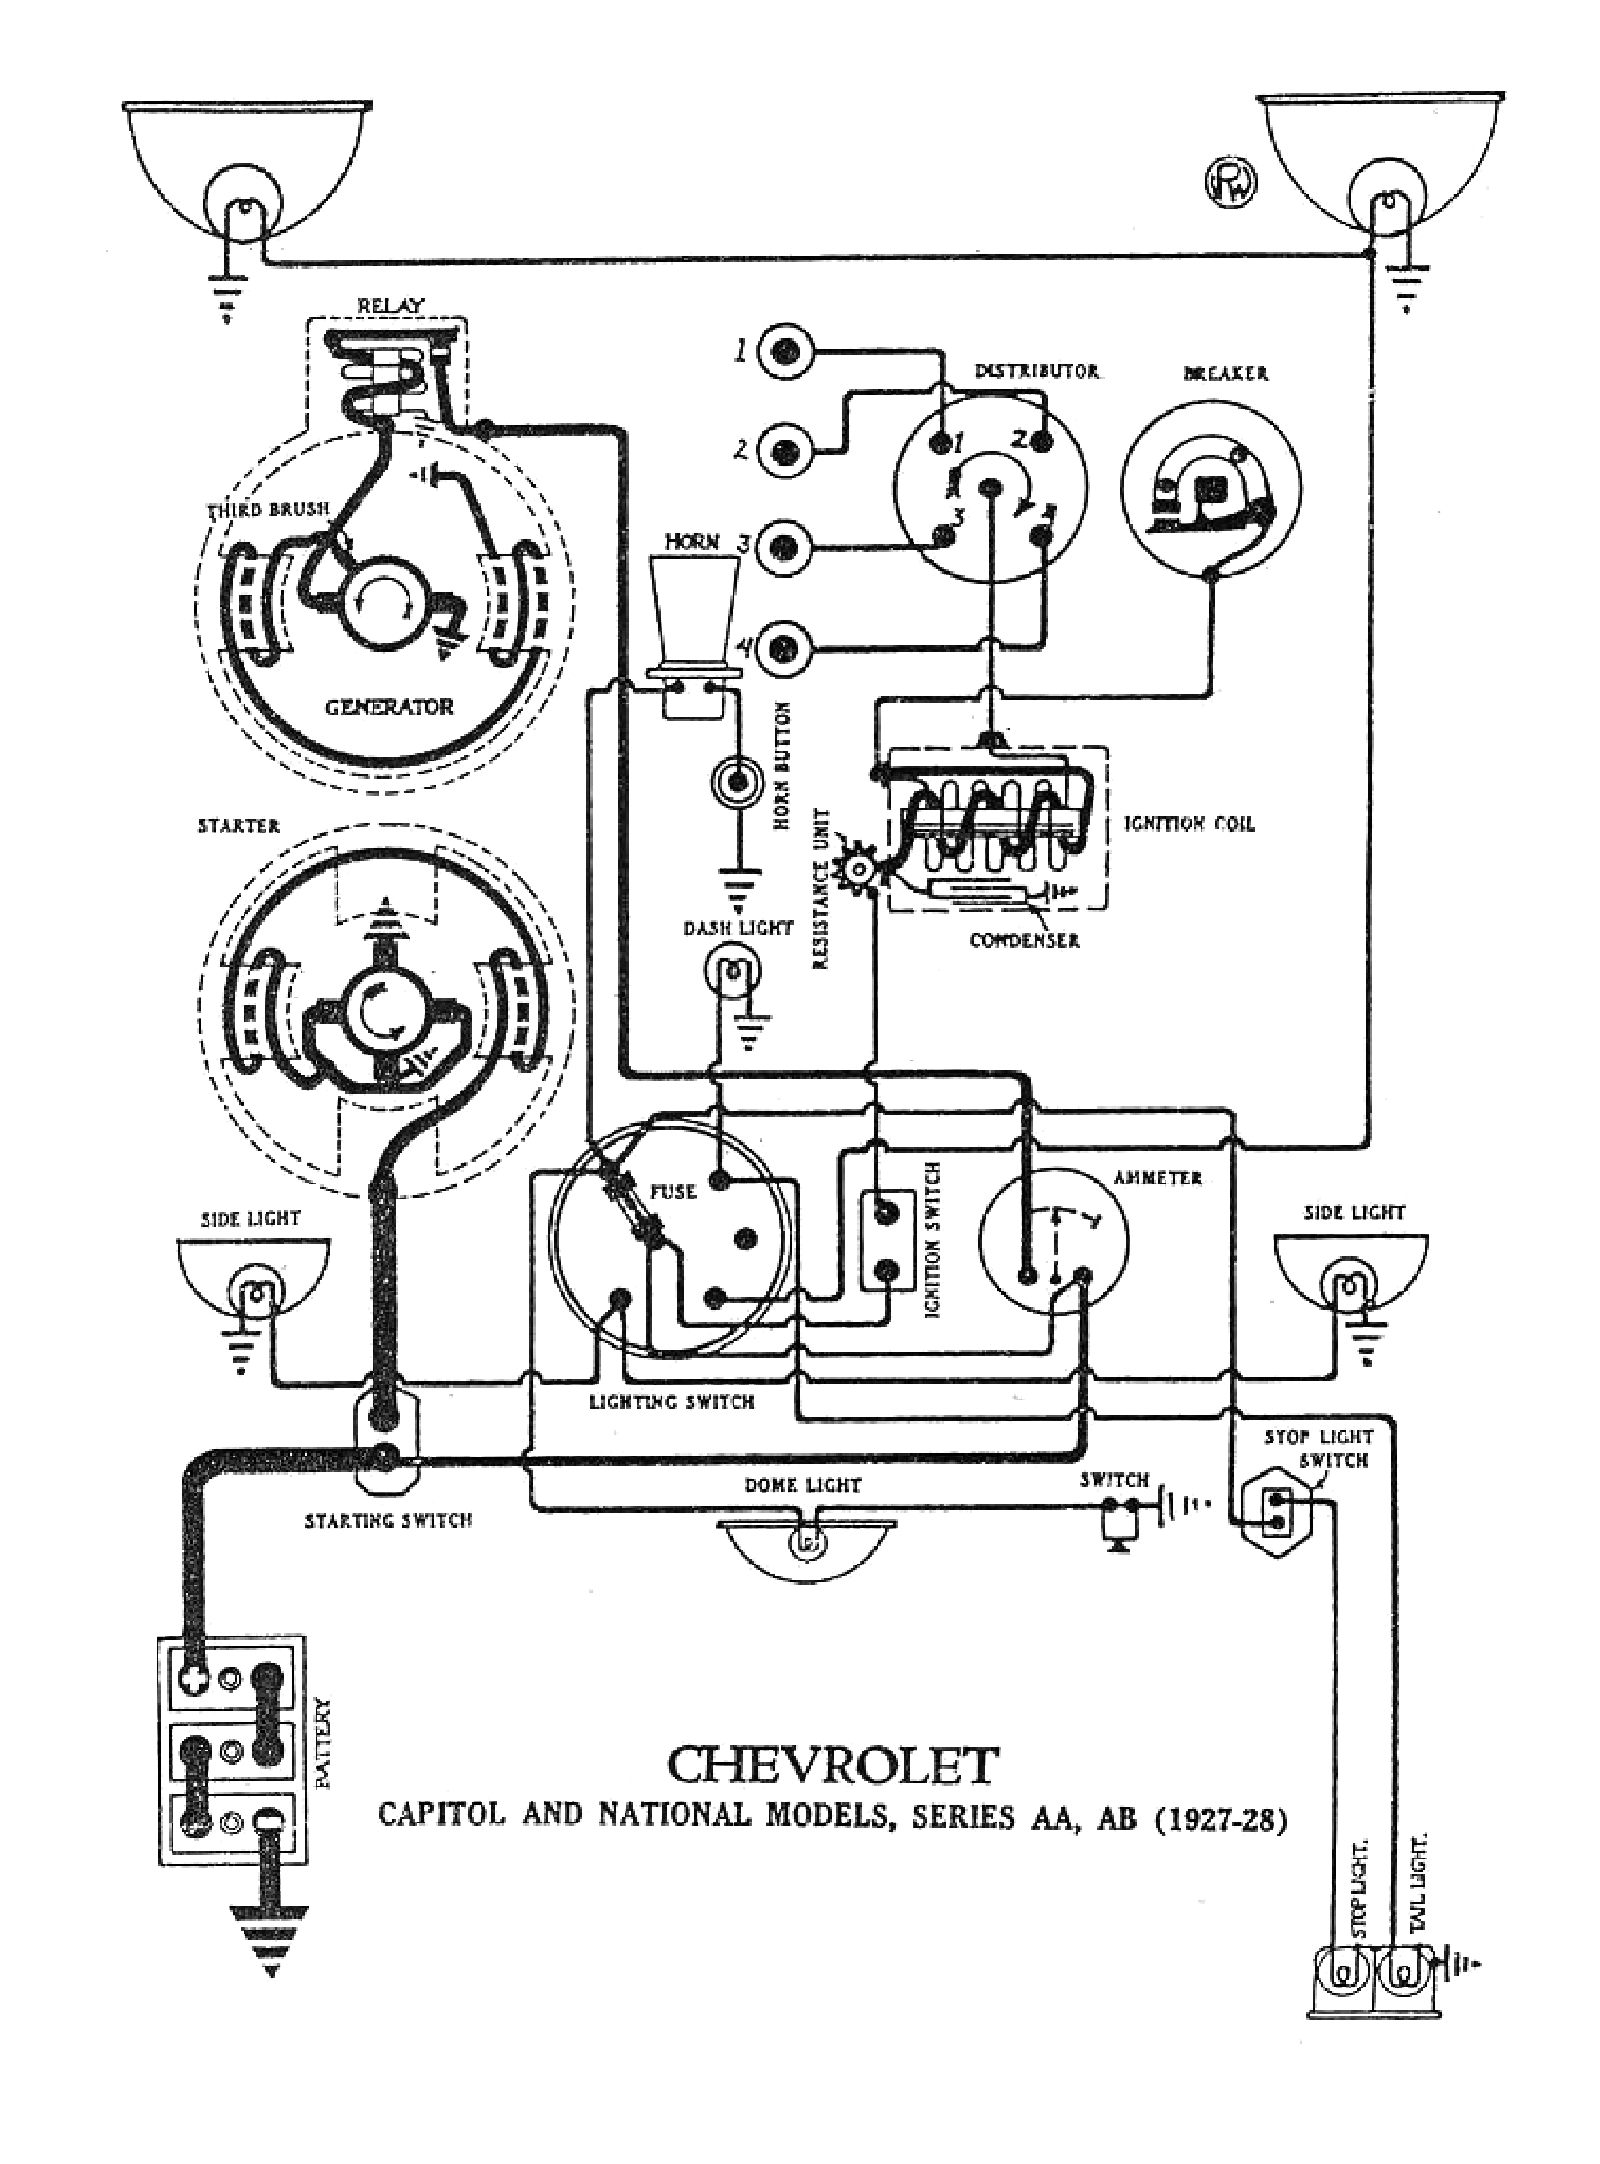 1946 Ford Distributor Wiring - Electrical Drawing Wiring Diagram •